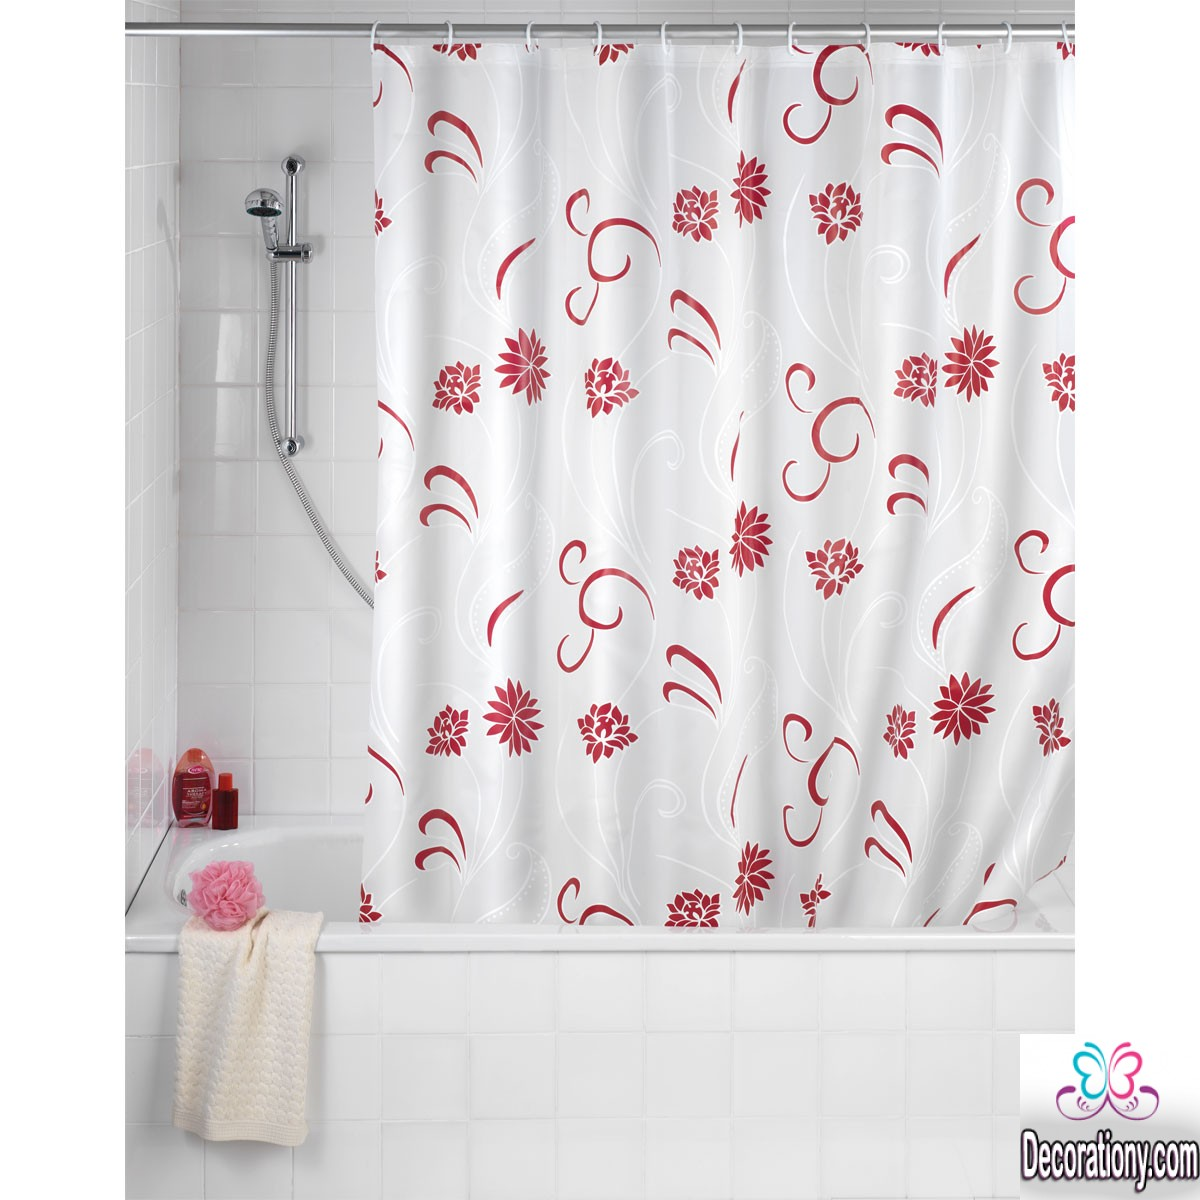 Amazing Bathroom Curtains Ideas Give The Place More Beauty